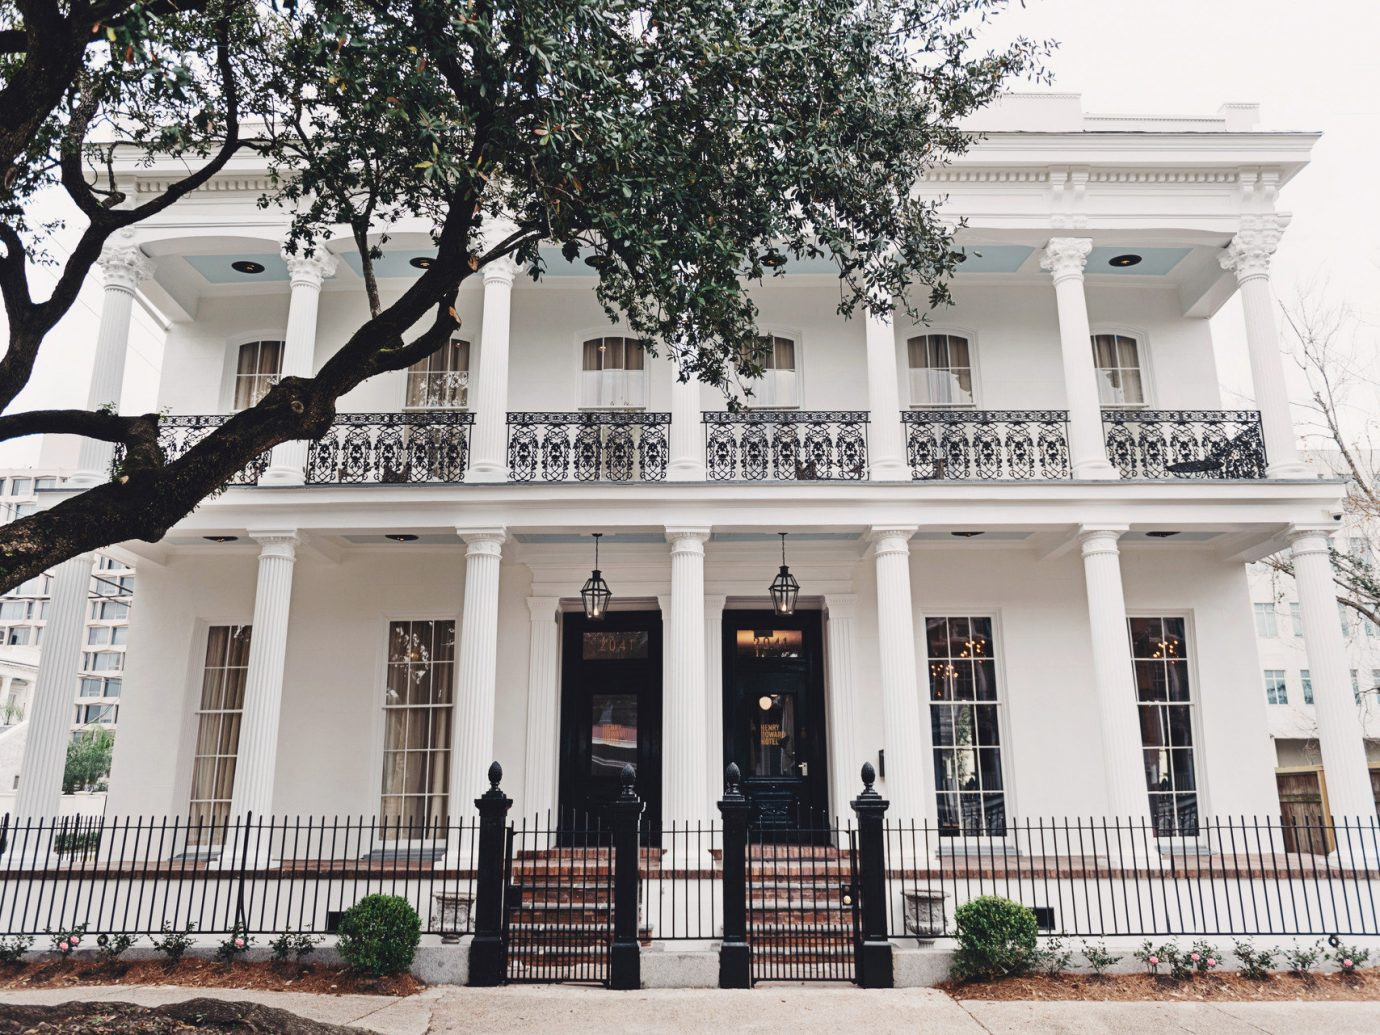 Boutique Hotels Food + Drink Girls Getaways Hotels New Orleans Trip Ideas Weekend Getaways tree property outdoor building neighbourhood house Architecture home estate facade plaza Courtyard mansion condominium palace